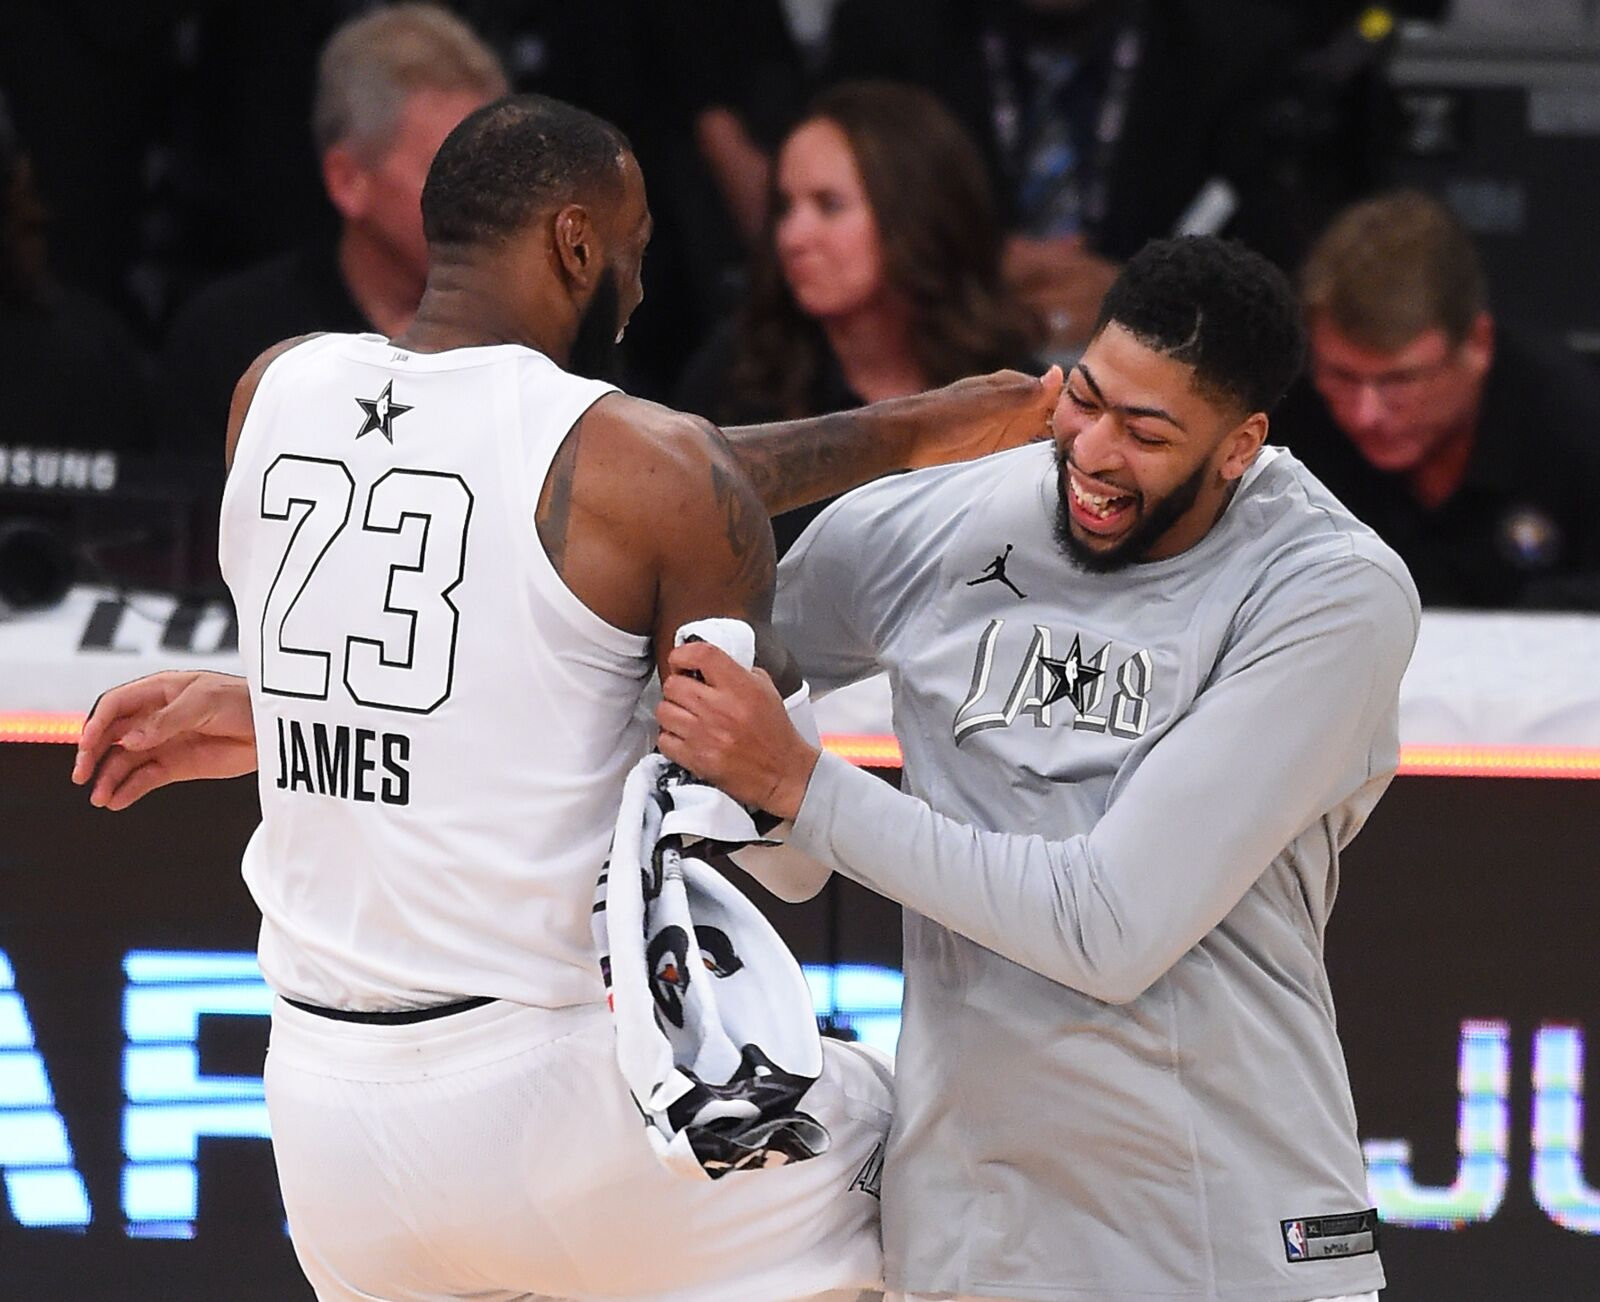 What to watch for at the 2020 NBA All-Star Weekend